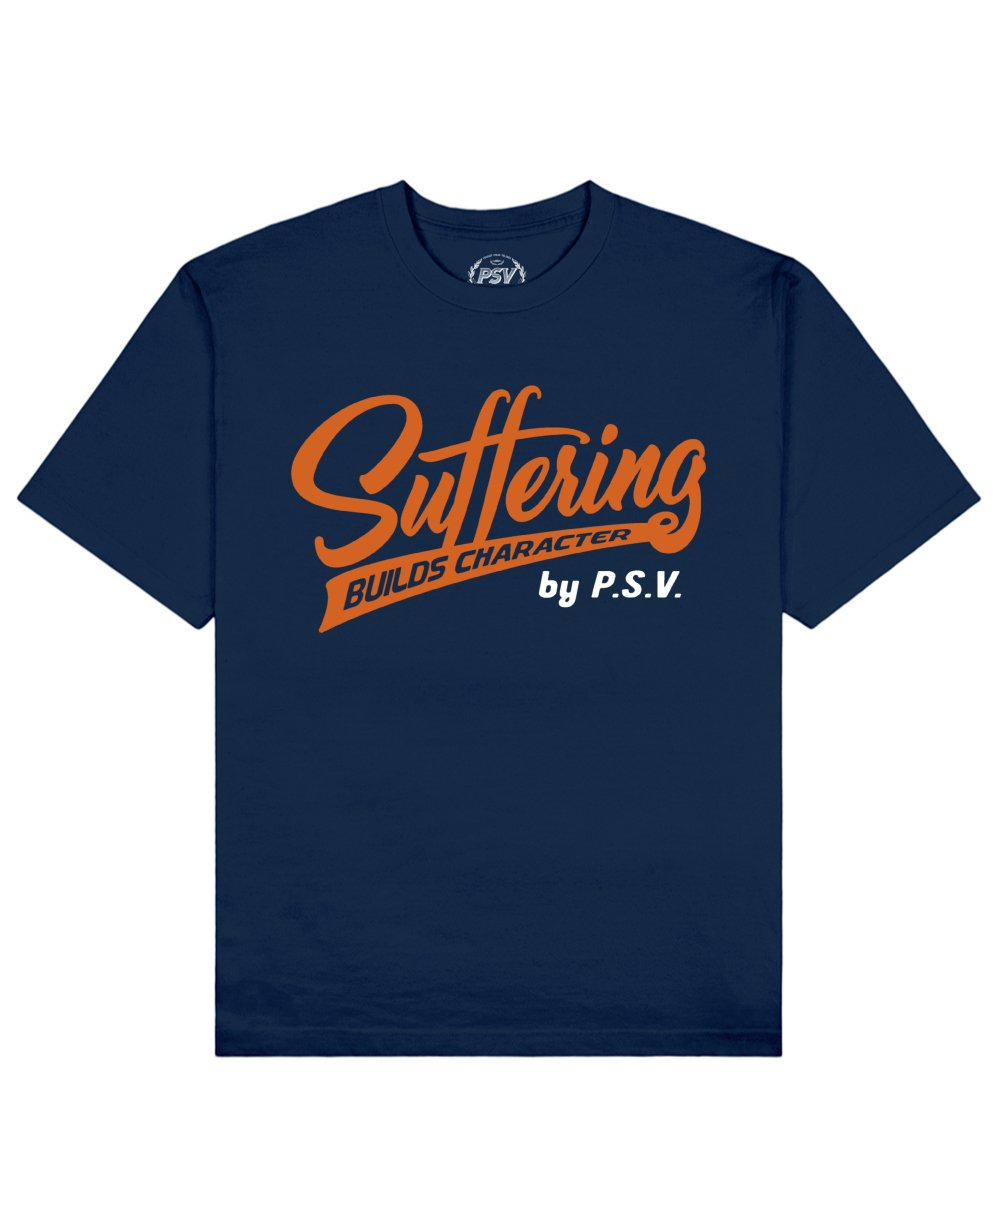 Suffering Builds Character Print T-Shirt in Blue - T-Shirts - PSV - BRANMA